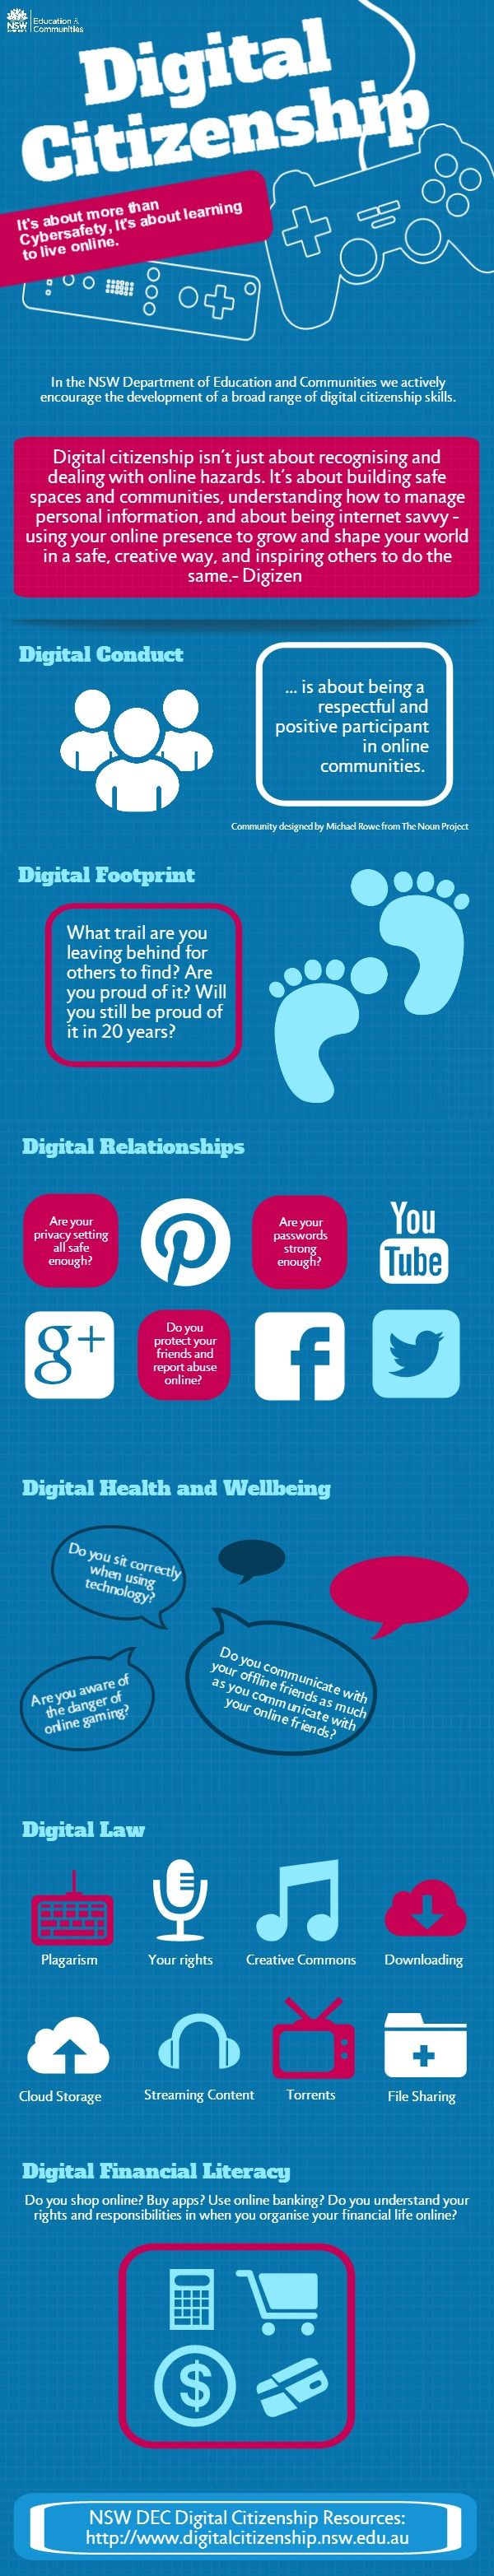 Digital Citizenship is.... | #infographics made in @Piktochart  An easy to read infographic that puts definitions and ideas behind elements of digital citizenship.